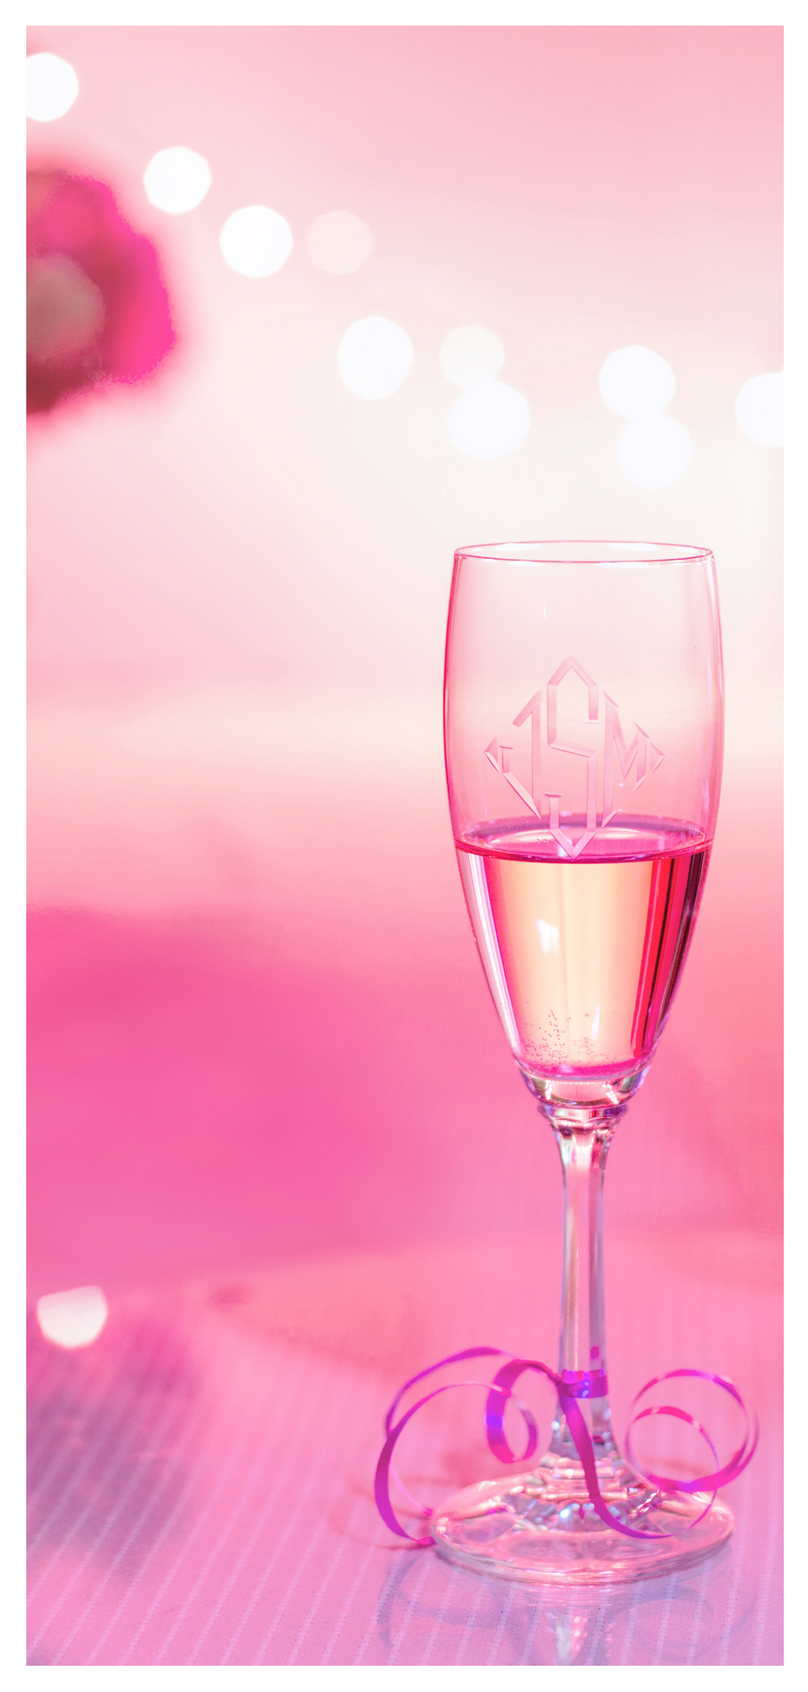 Pink romantic wallpaper wallpaper backgrounds image_picture